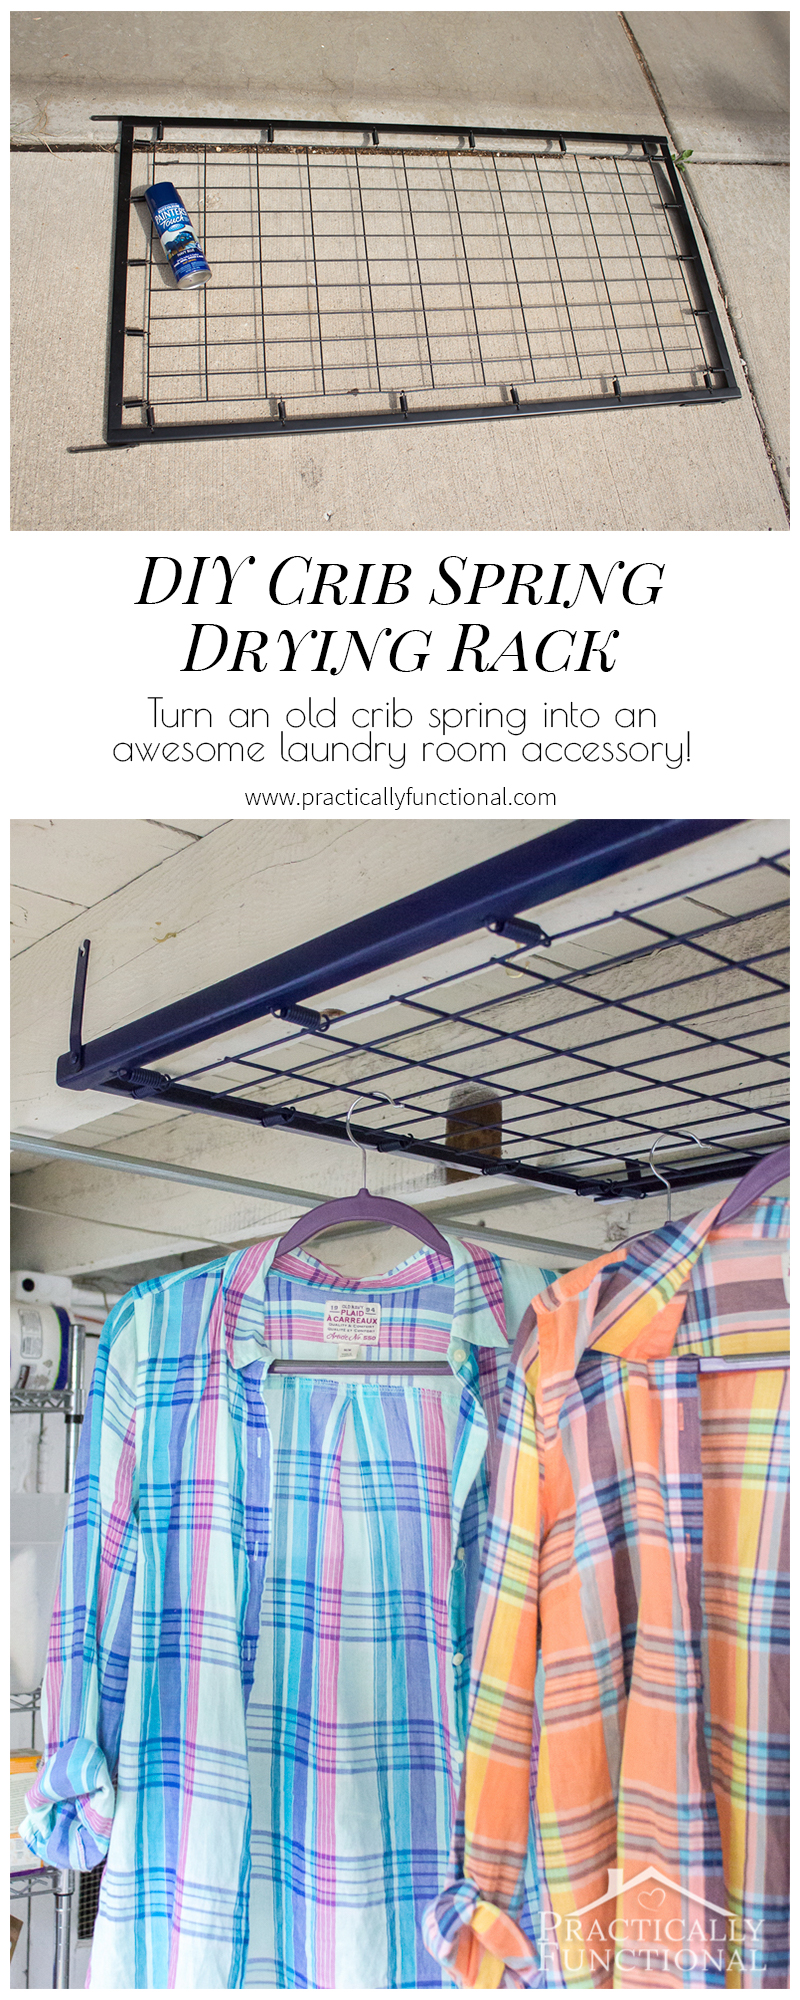 Turn an old crib spring into a functional laundry room accessory! This DIY drying rack is so quick and easy to make!